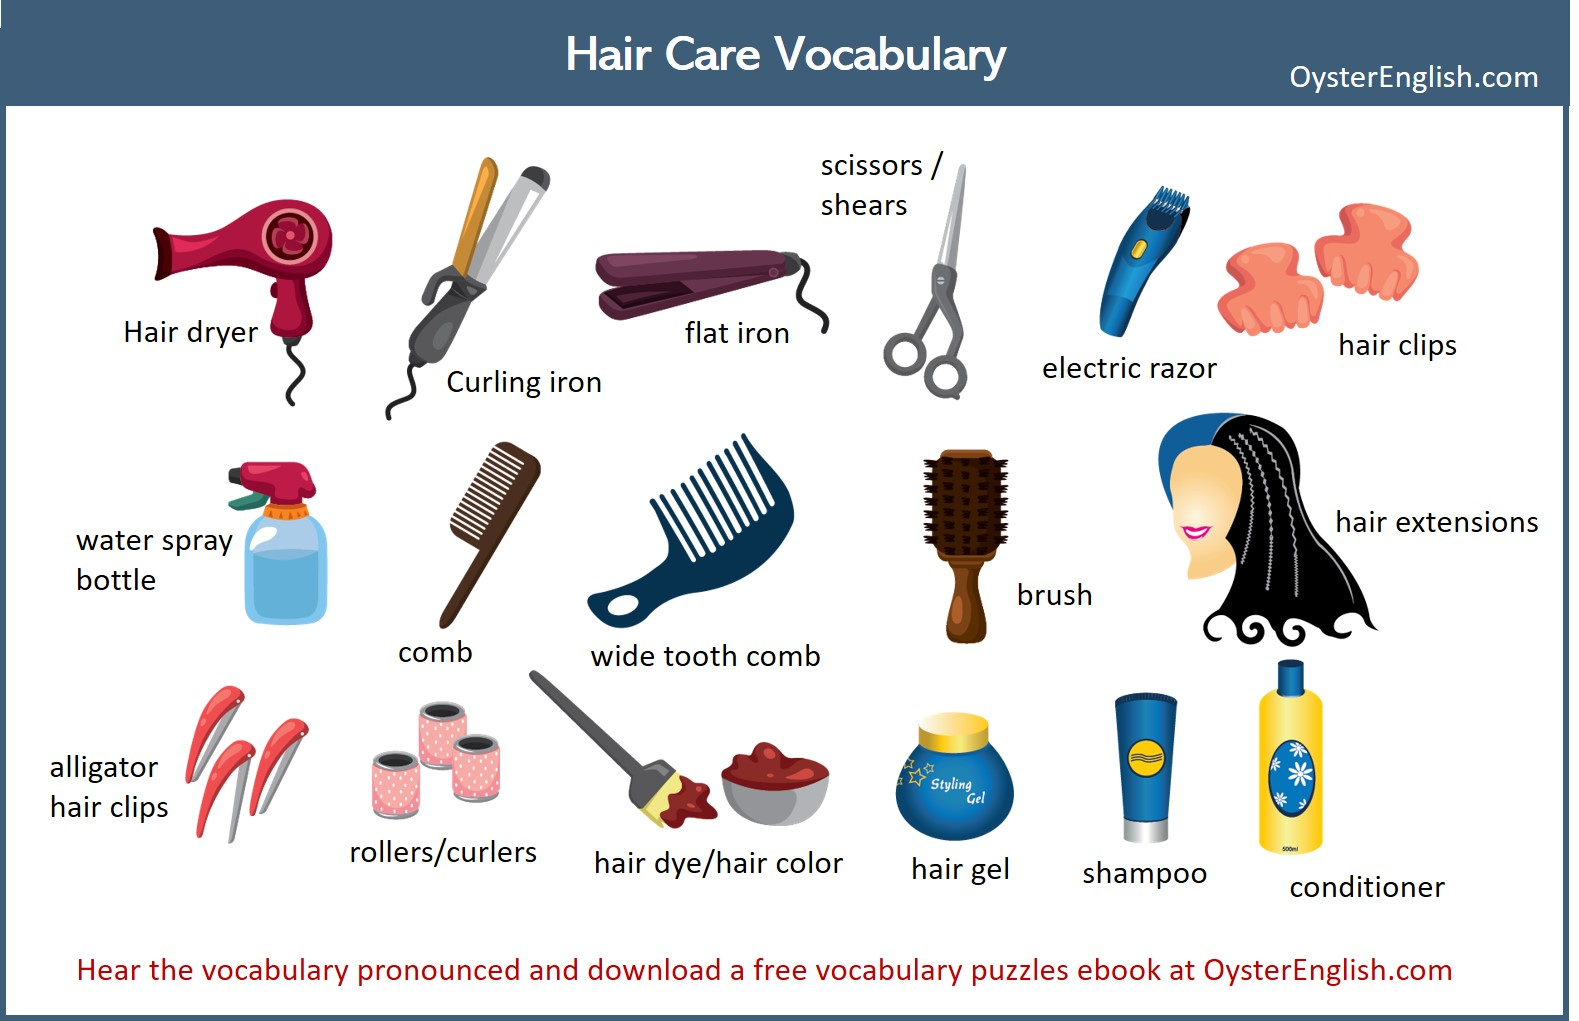 A collage of the hair care vocabulary icons and words featured on this page.